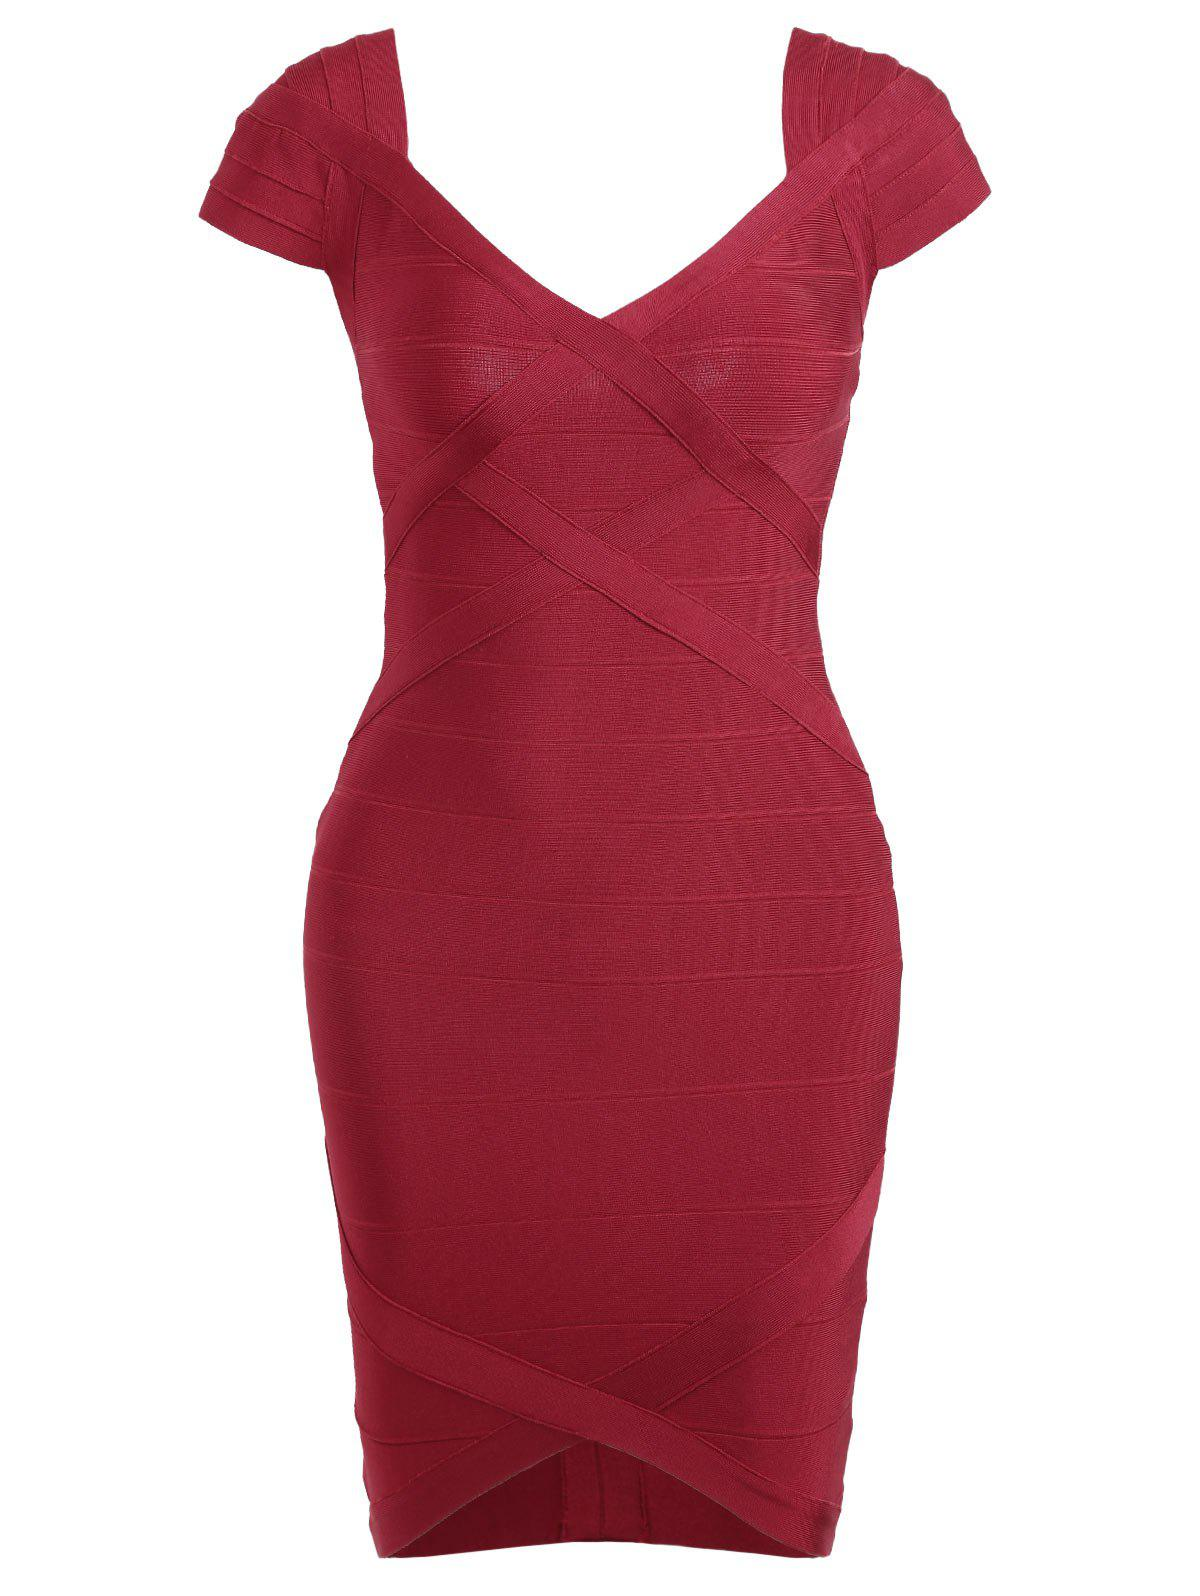 Cap Sleeve V Neck Bandage Dress - RED L